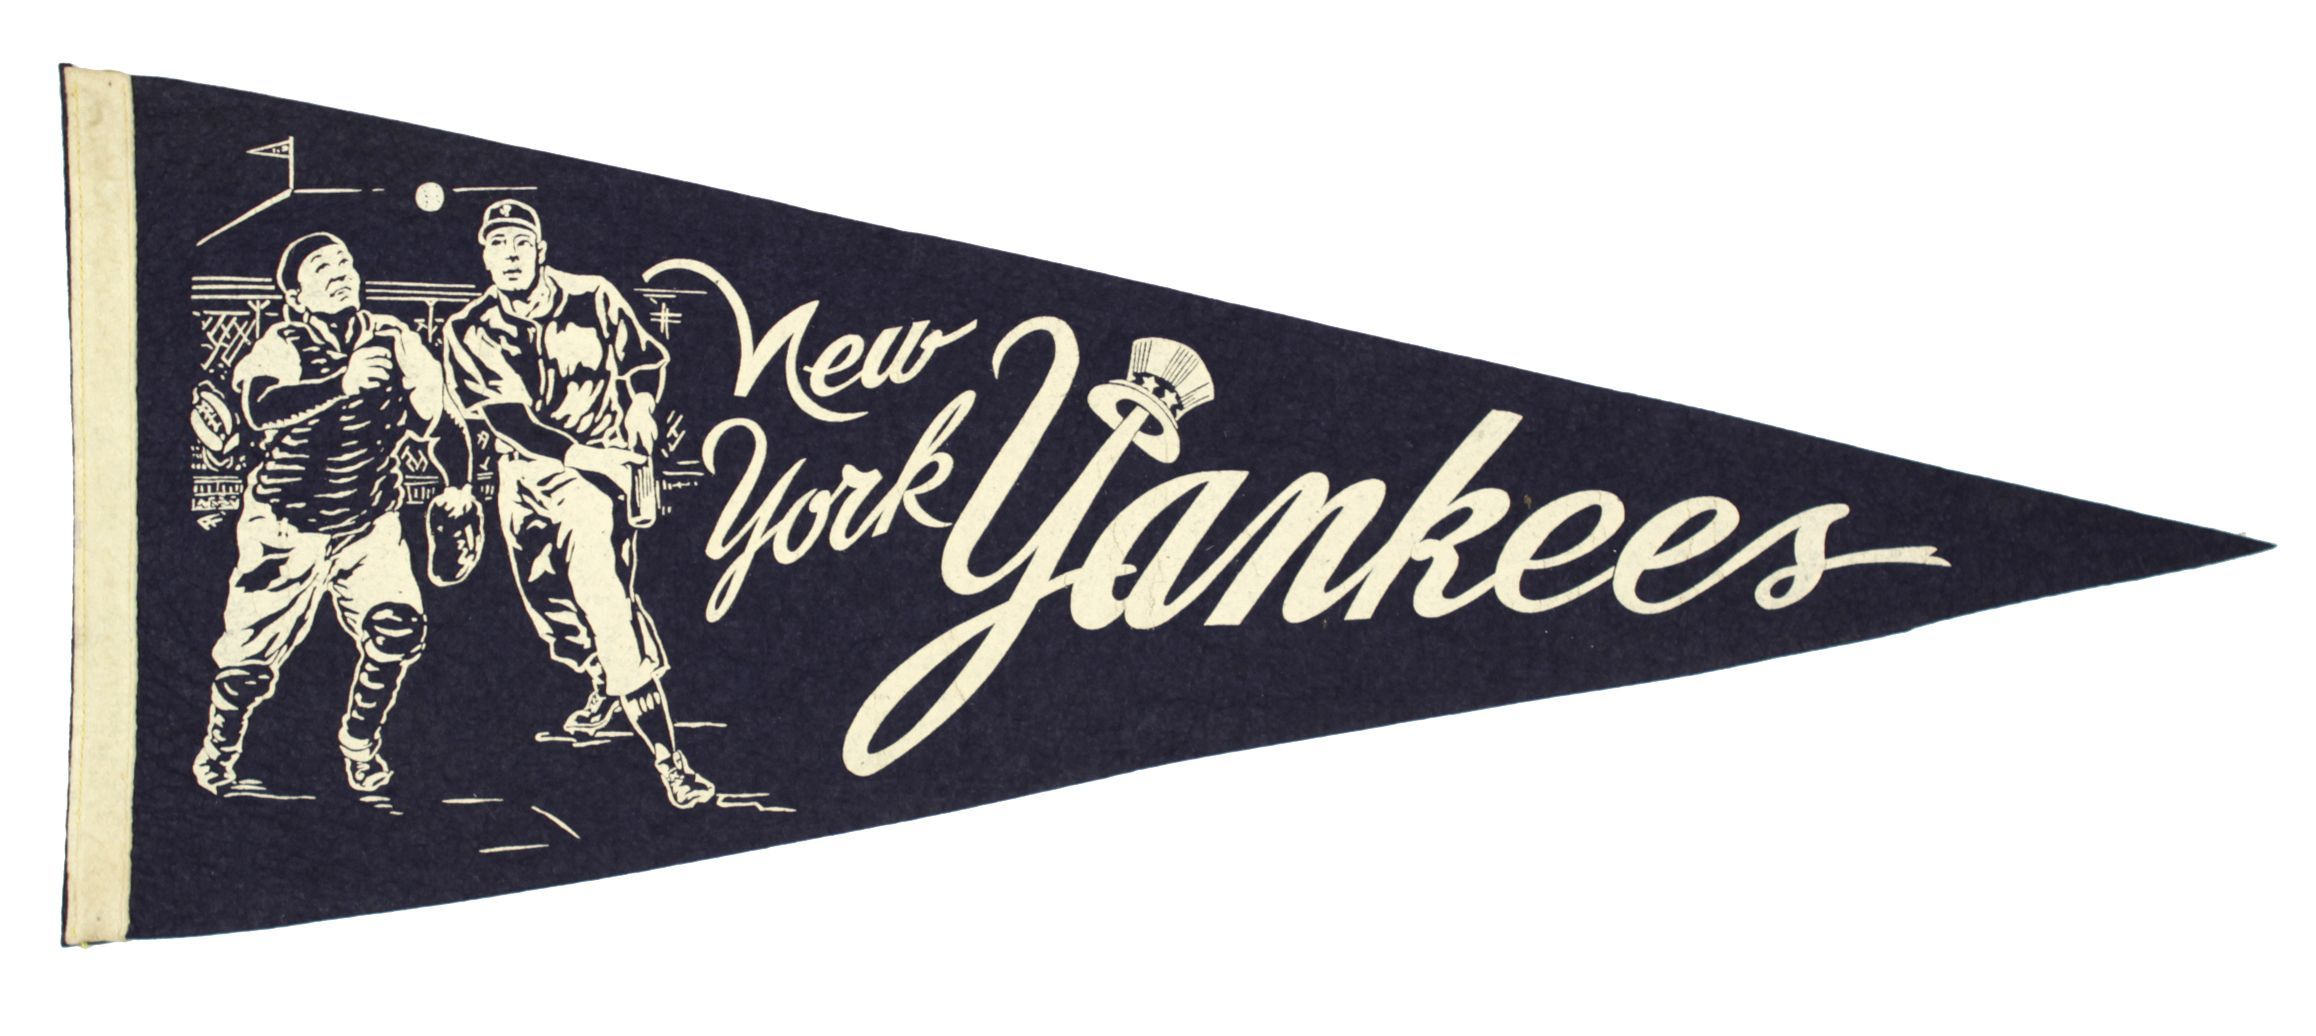 The New York Yankees Dominated The Mlb In The 1950 S They Won 6 Out Of The 10 World Series Of That Decade They Also New York Yankees American League Pennant